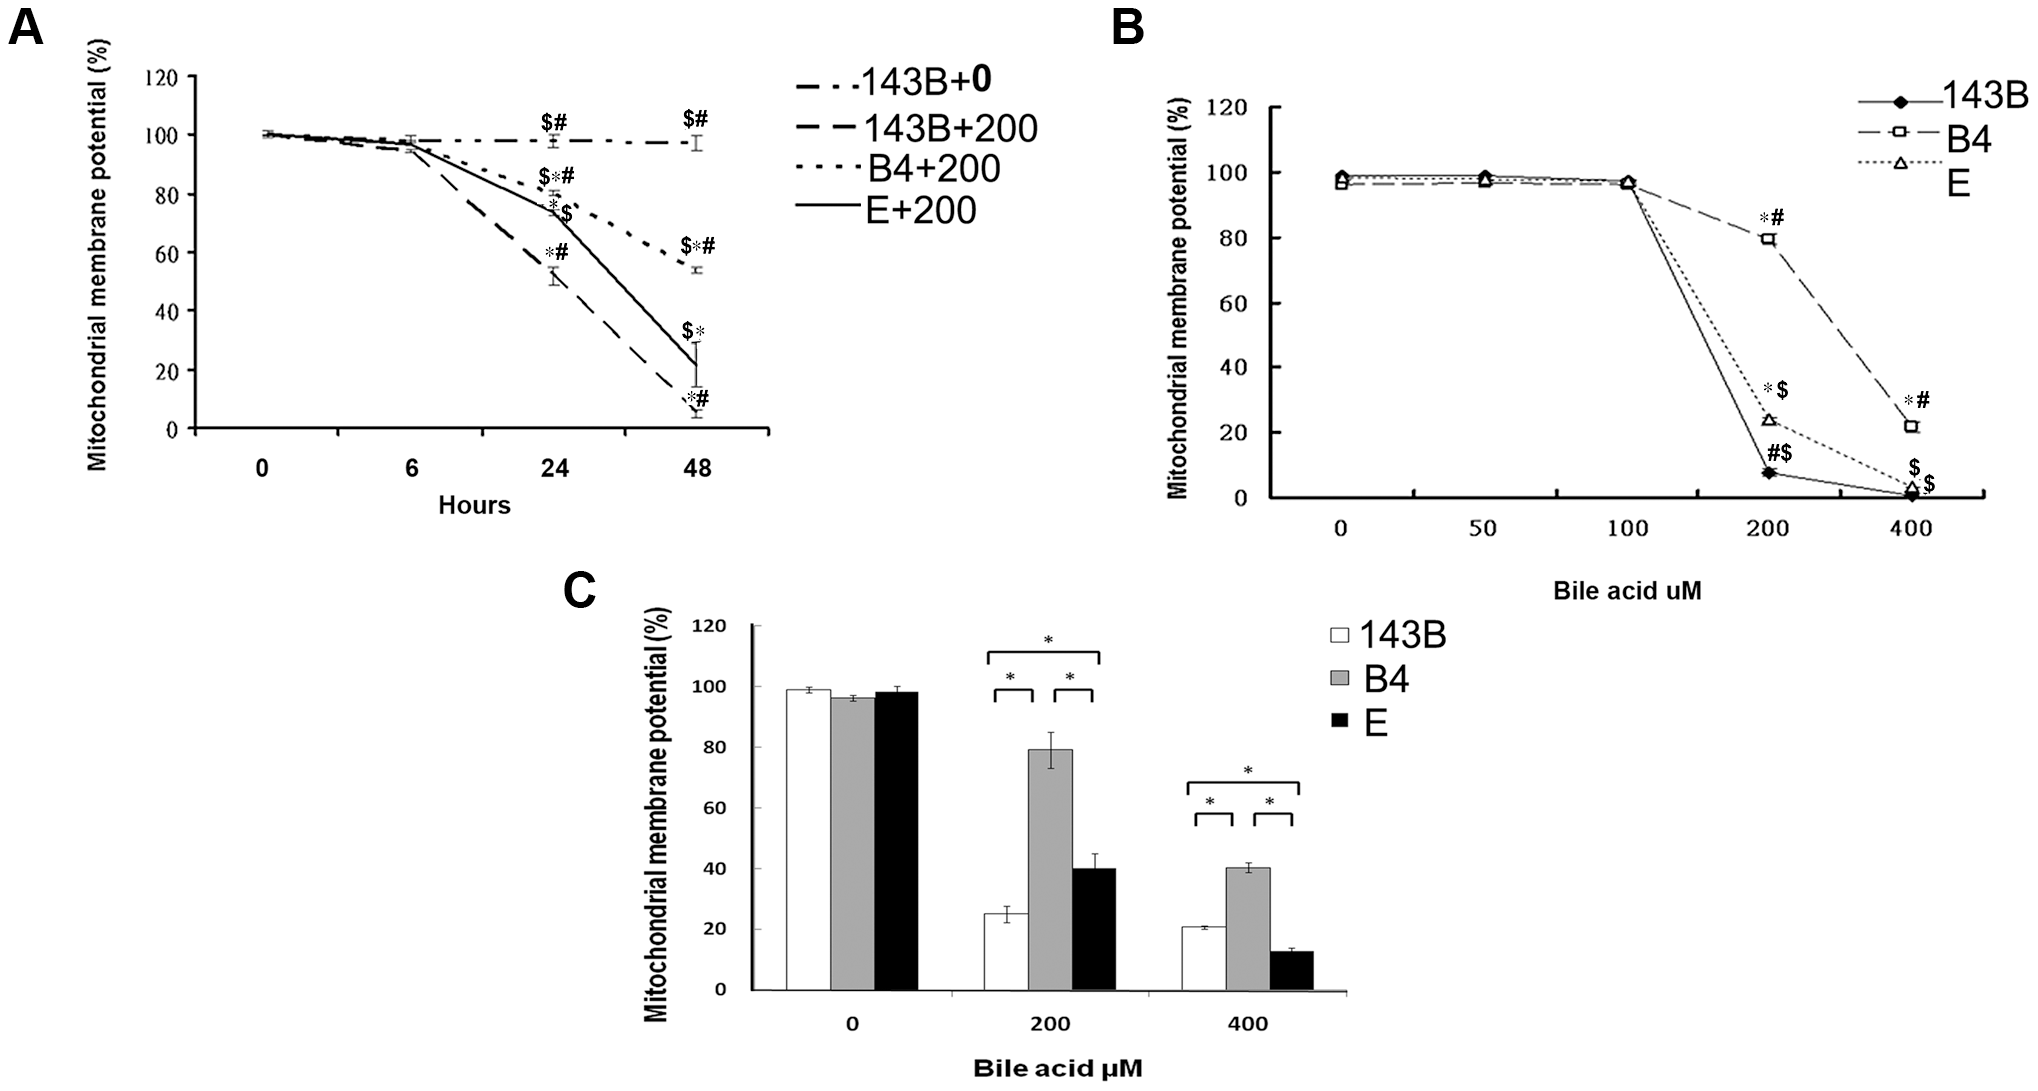 Time- and dose-dependent mitochondrial membrane potential in the parental 143B cells, and cybrid B4 and E cells in response to the bile acid treatment.